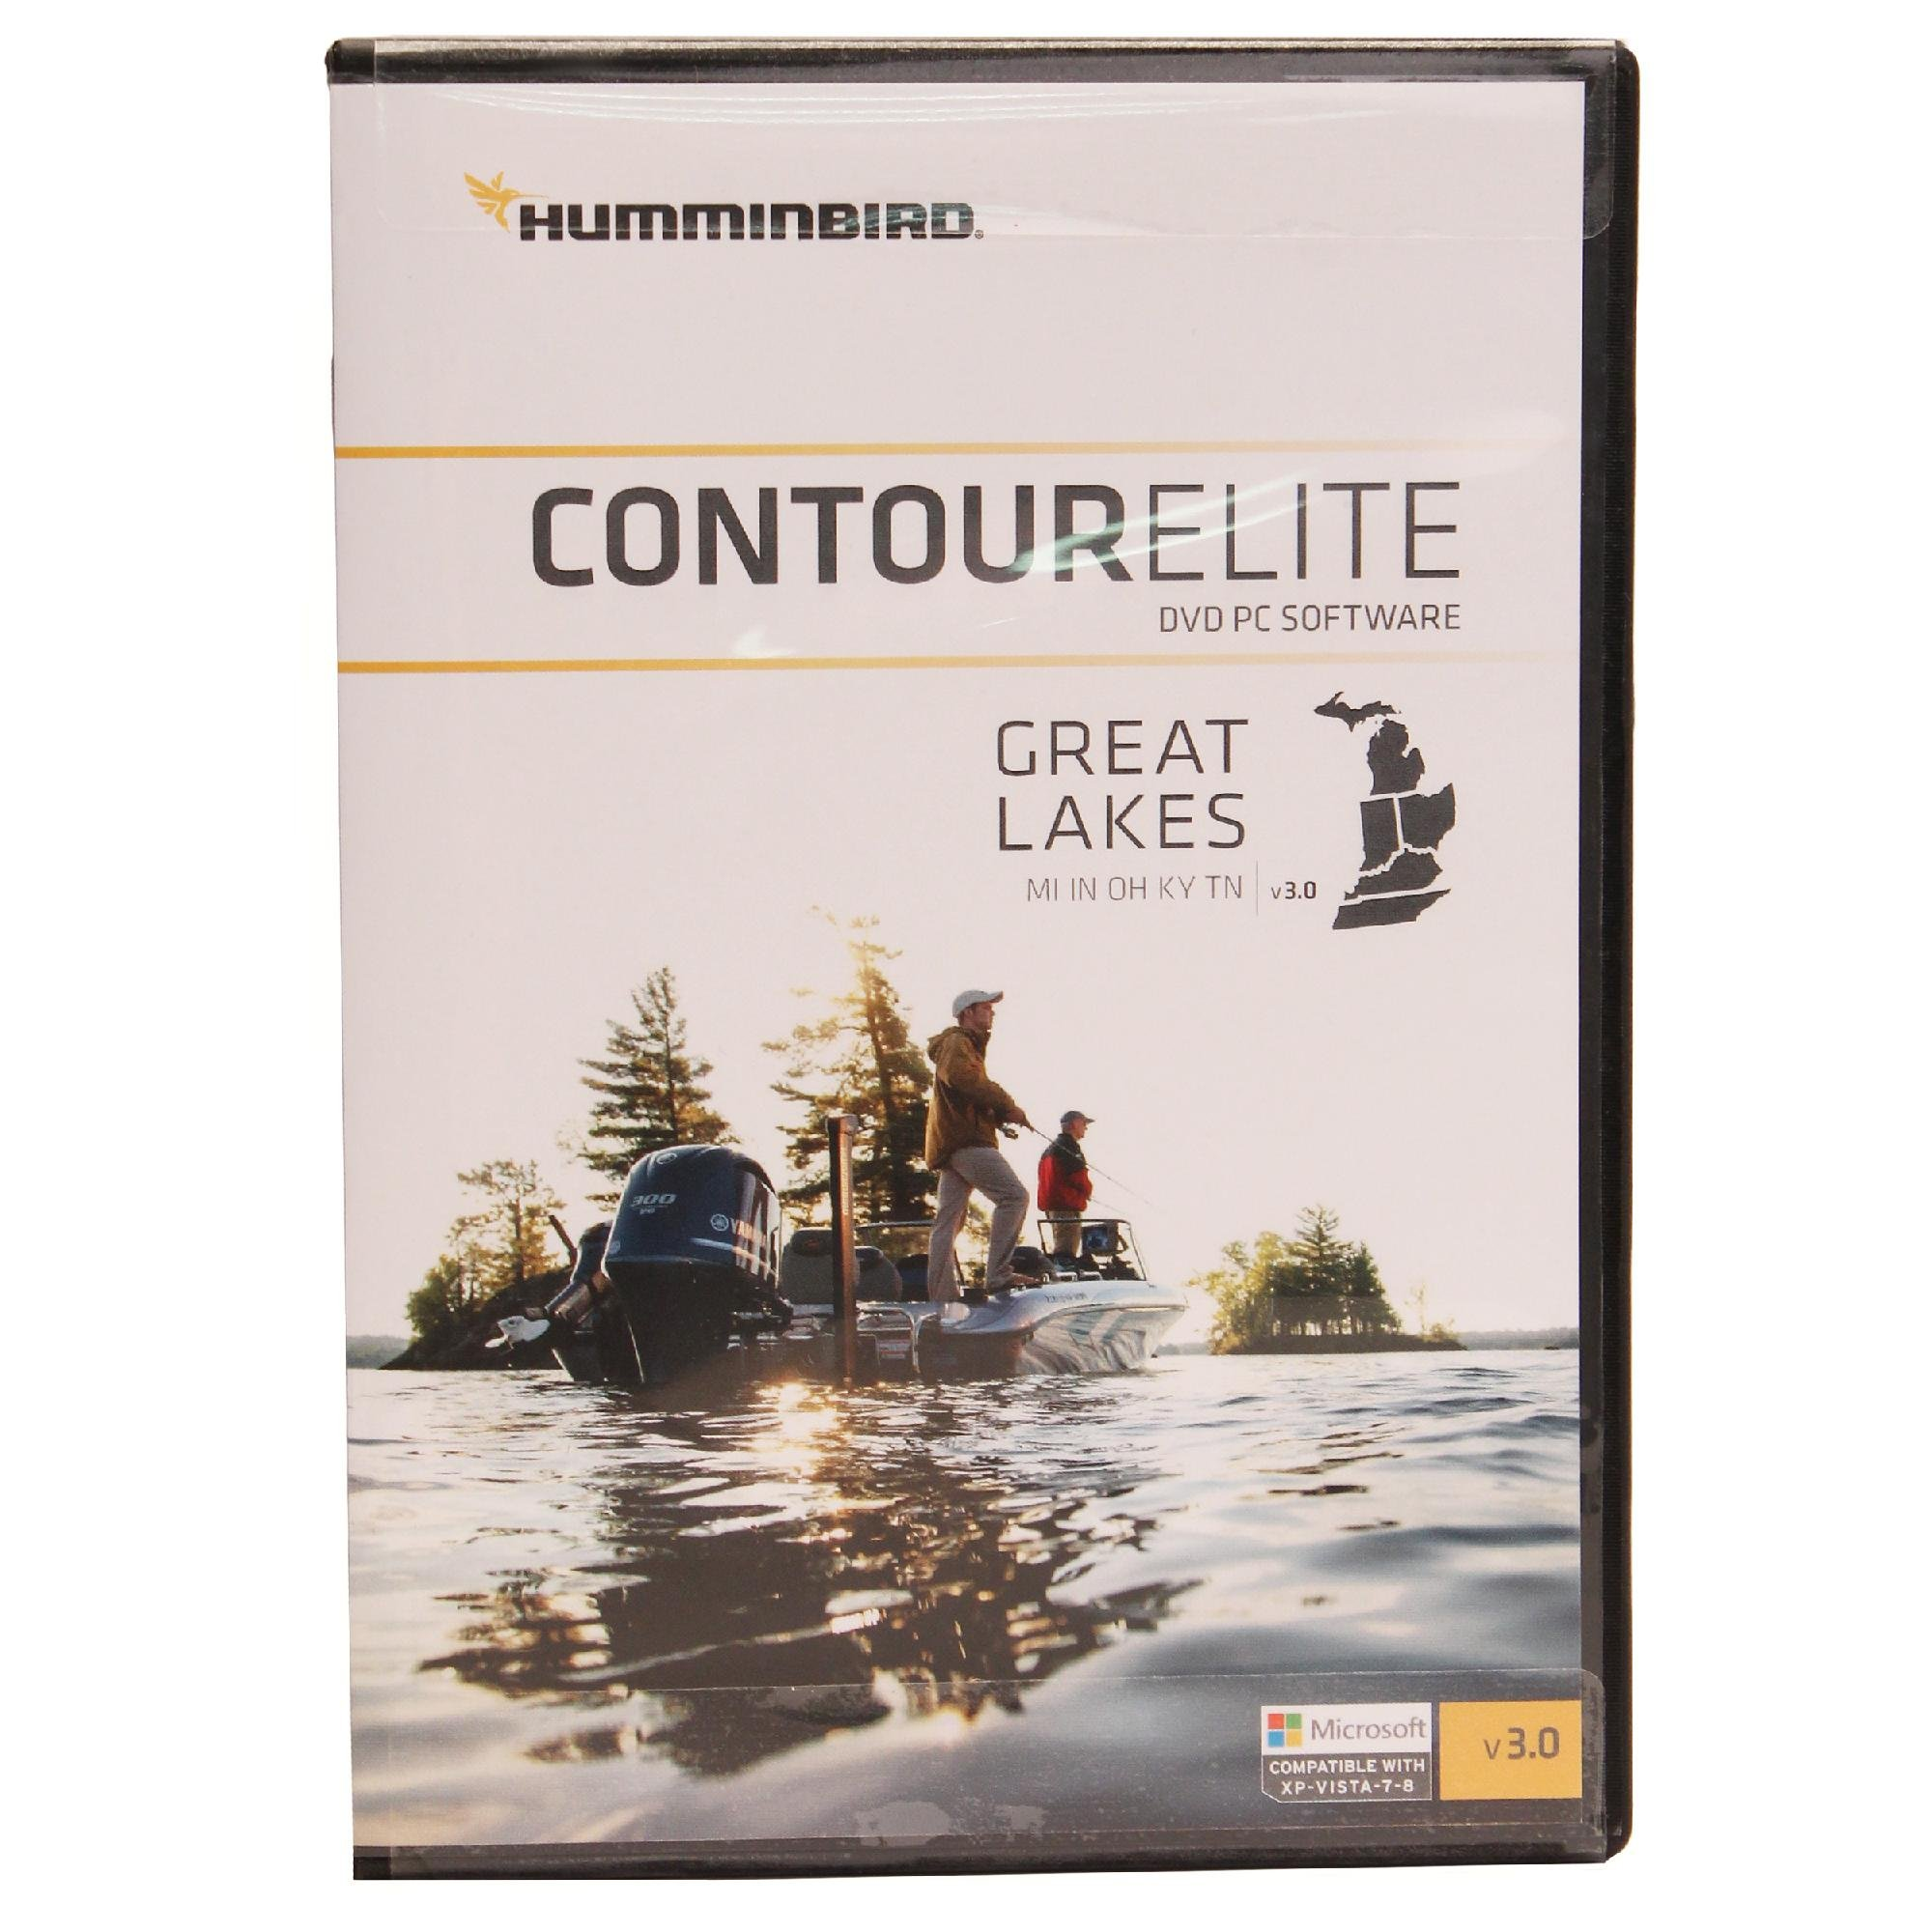 Humminbird Lakemaster 600016-3 Contour Elite- Great Lakes Boating Chartplotters (Feb '16)